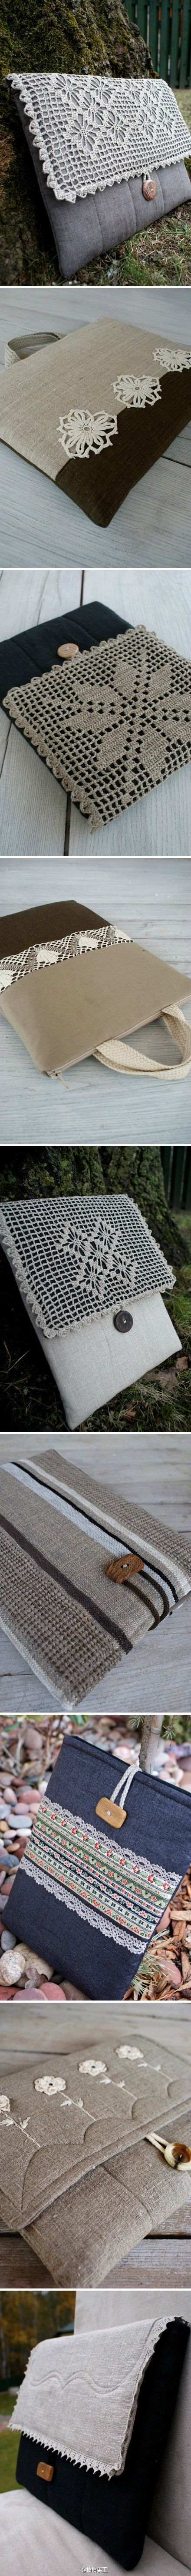 girly laptop/notepad cover  Repinned by RainyDayEmbrdry www.etsy.com/shop/RainyDayEmbroidery